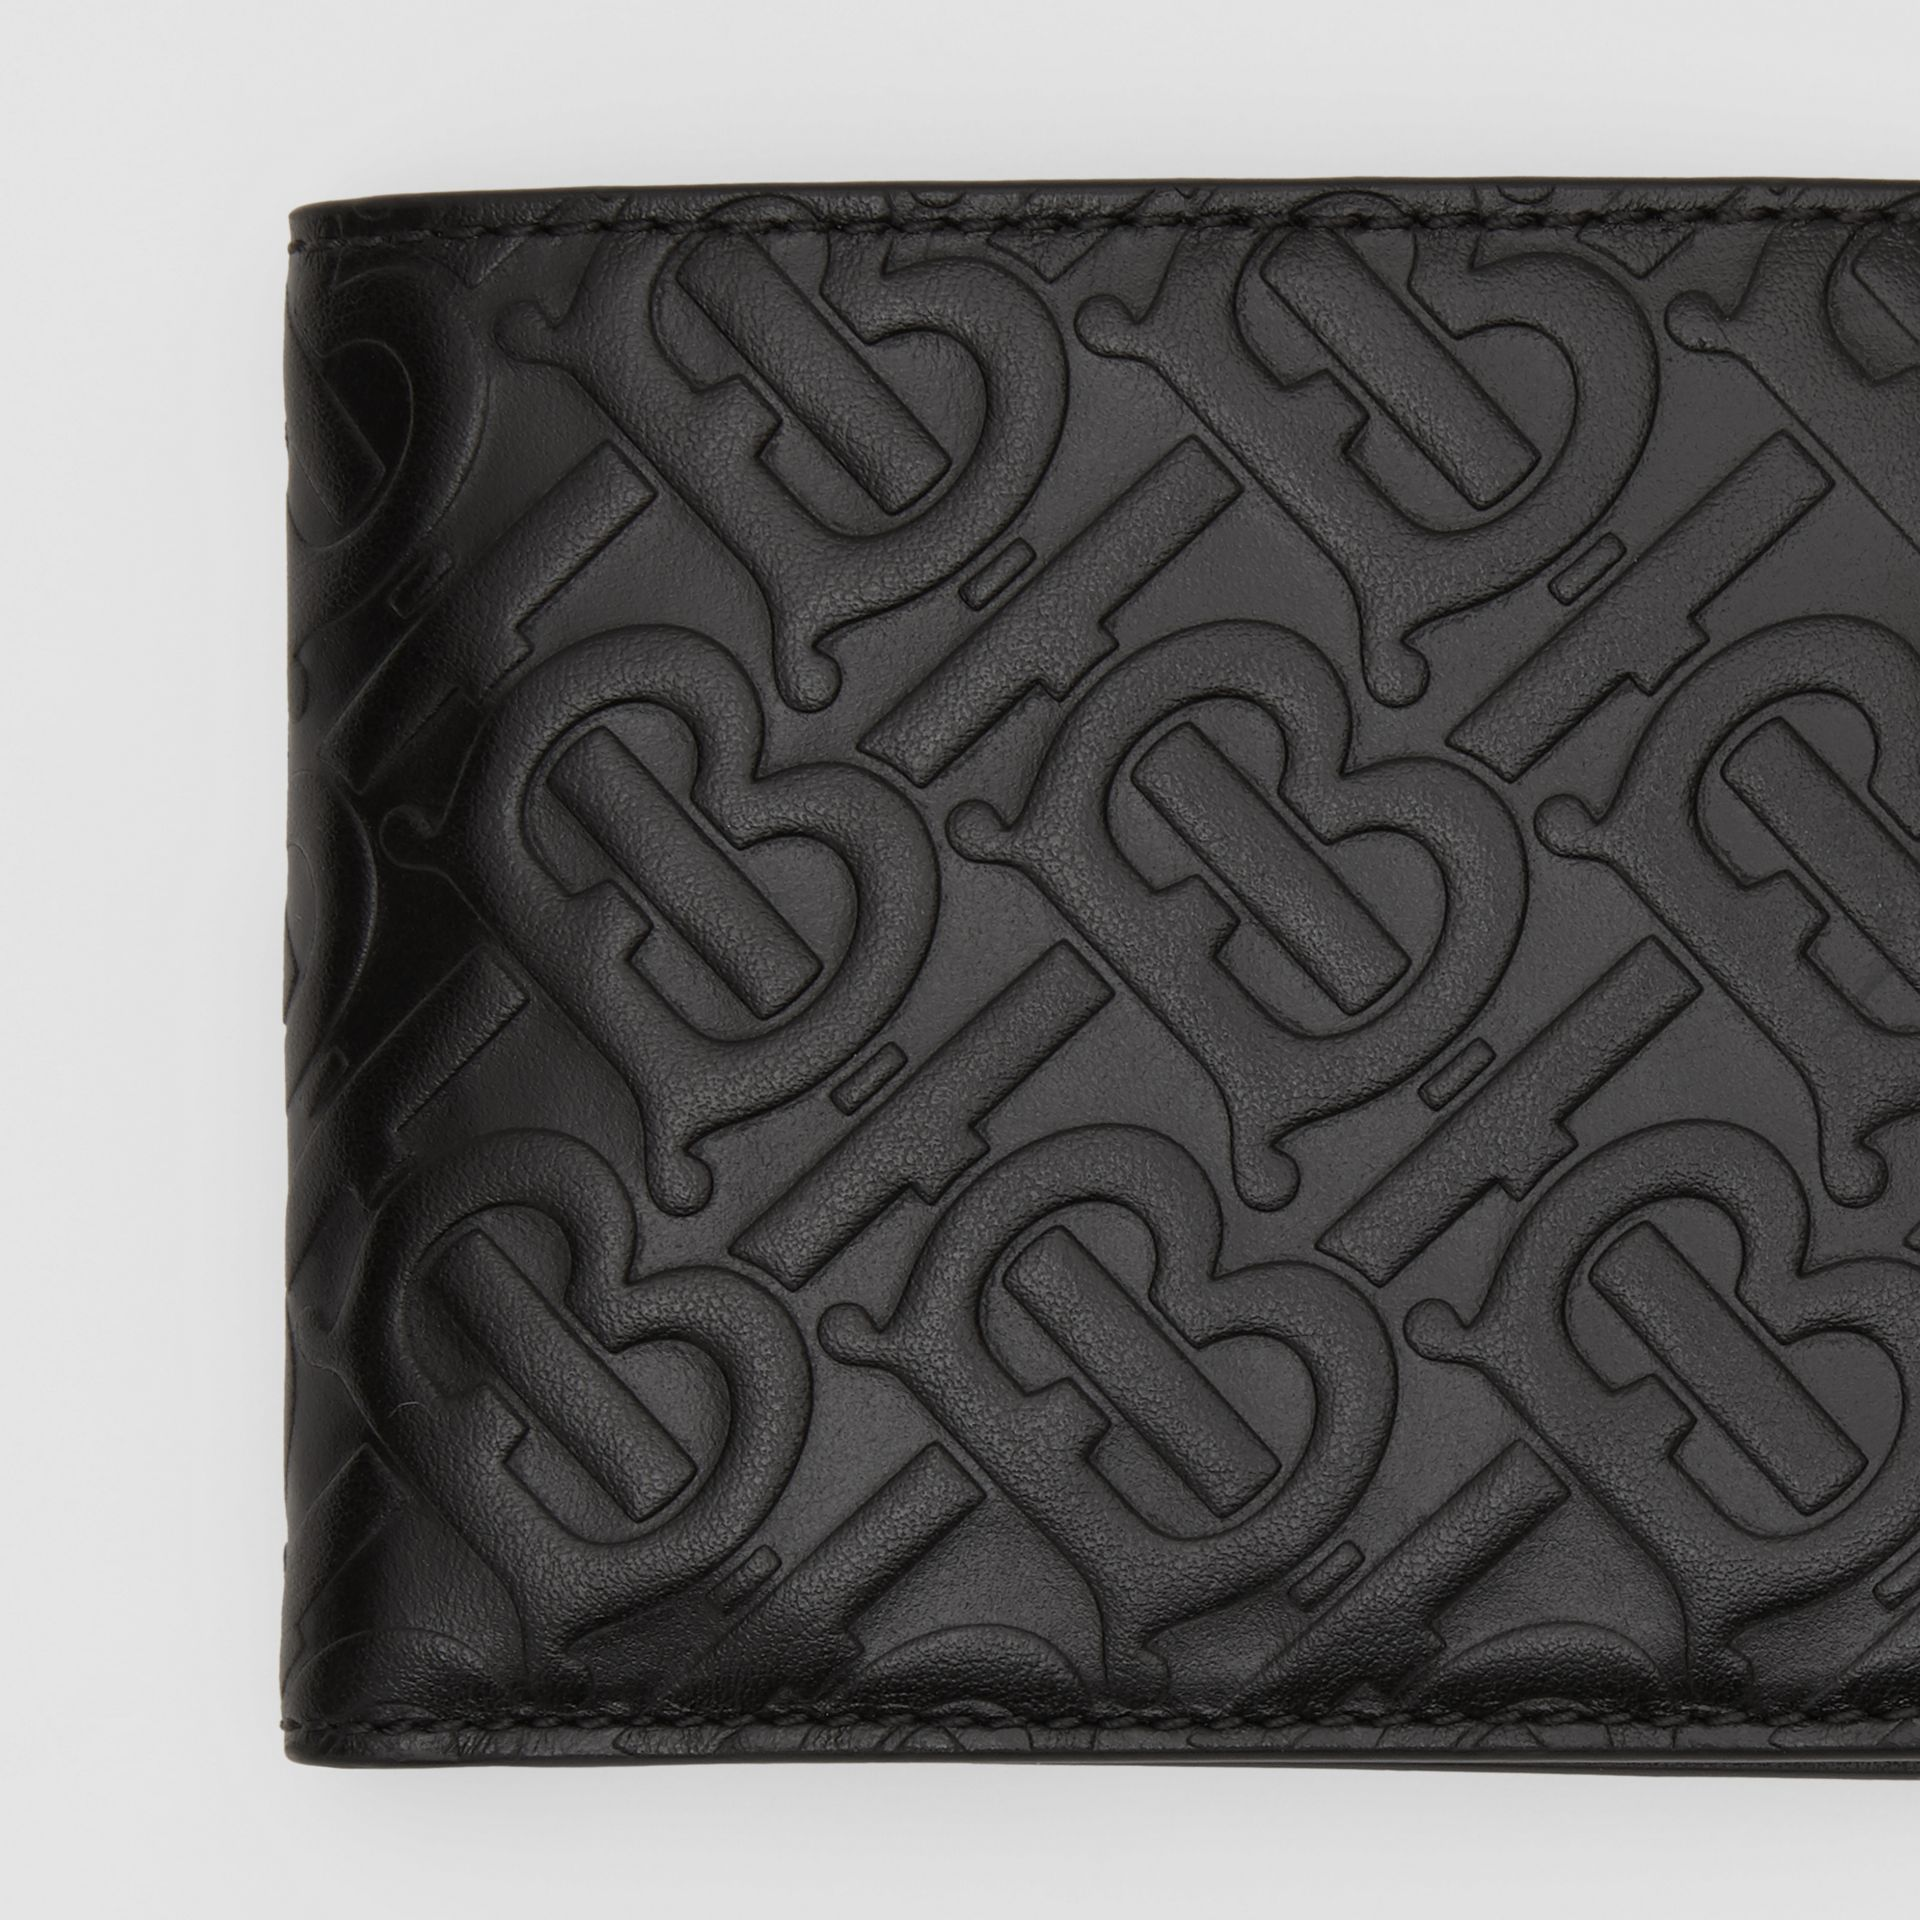 Monogram Leather International Bifold Coin Wallet in Black - Men | Burberry - gallery image 1